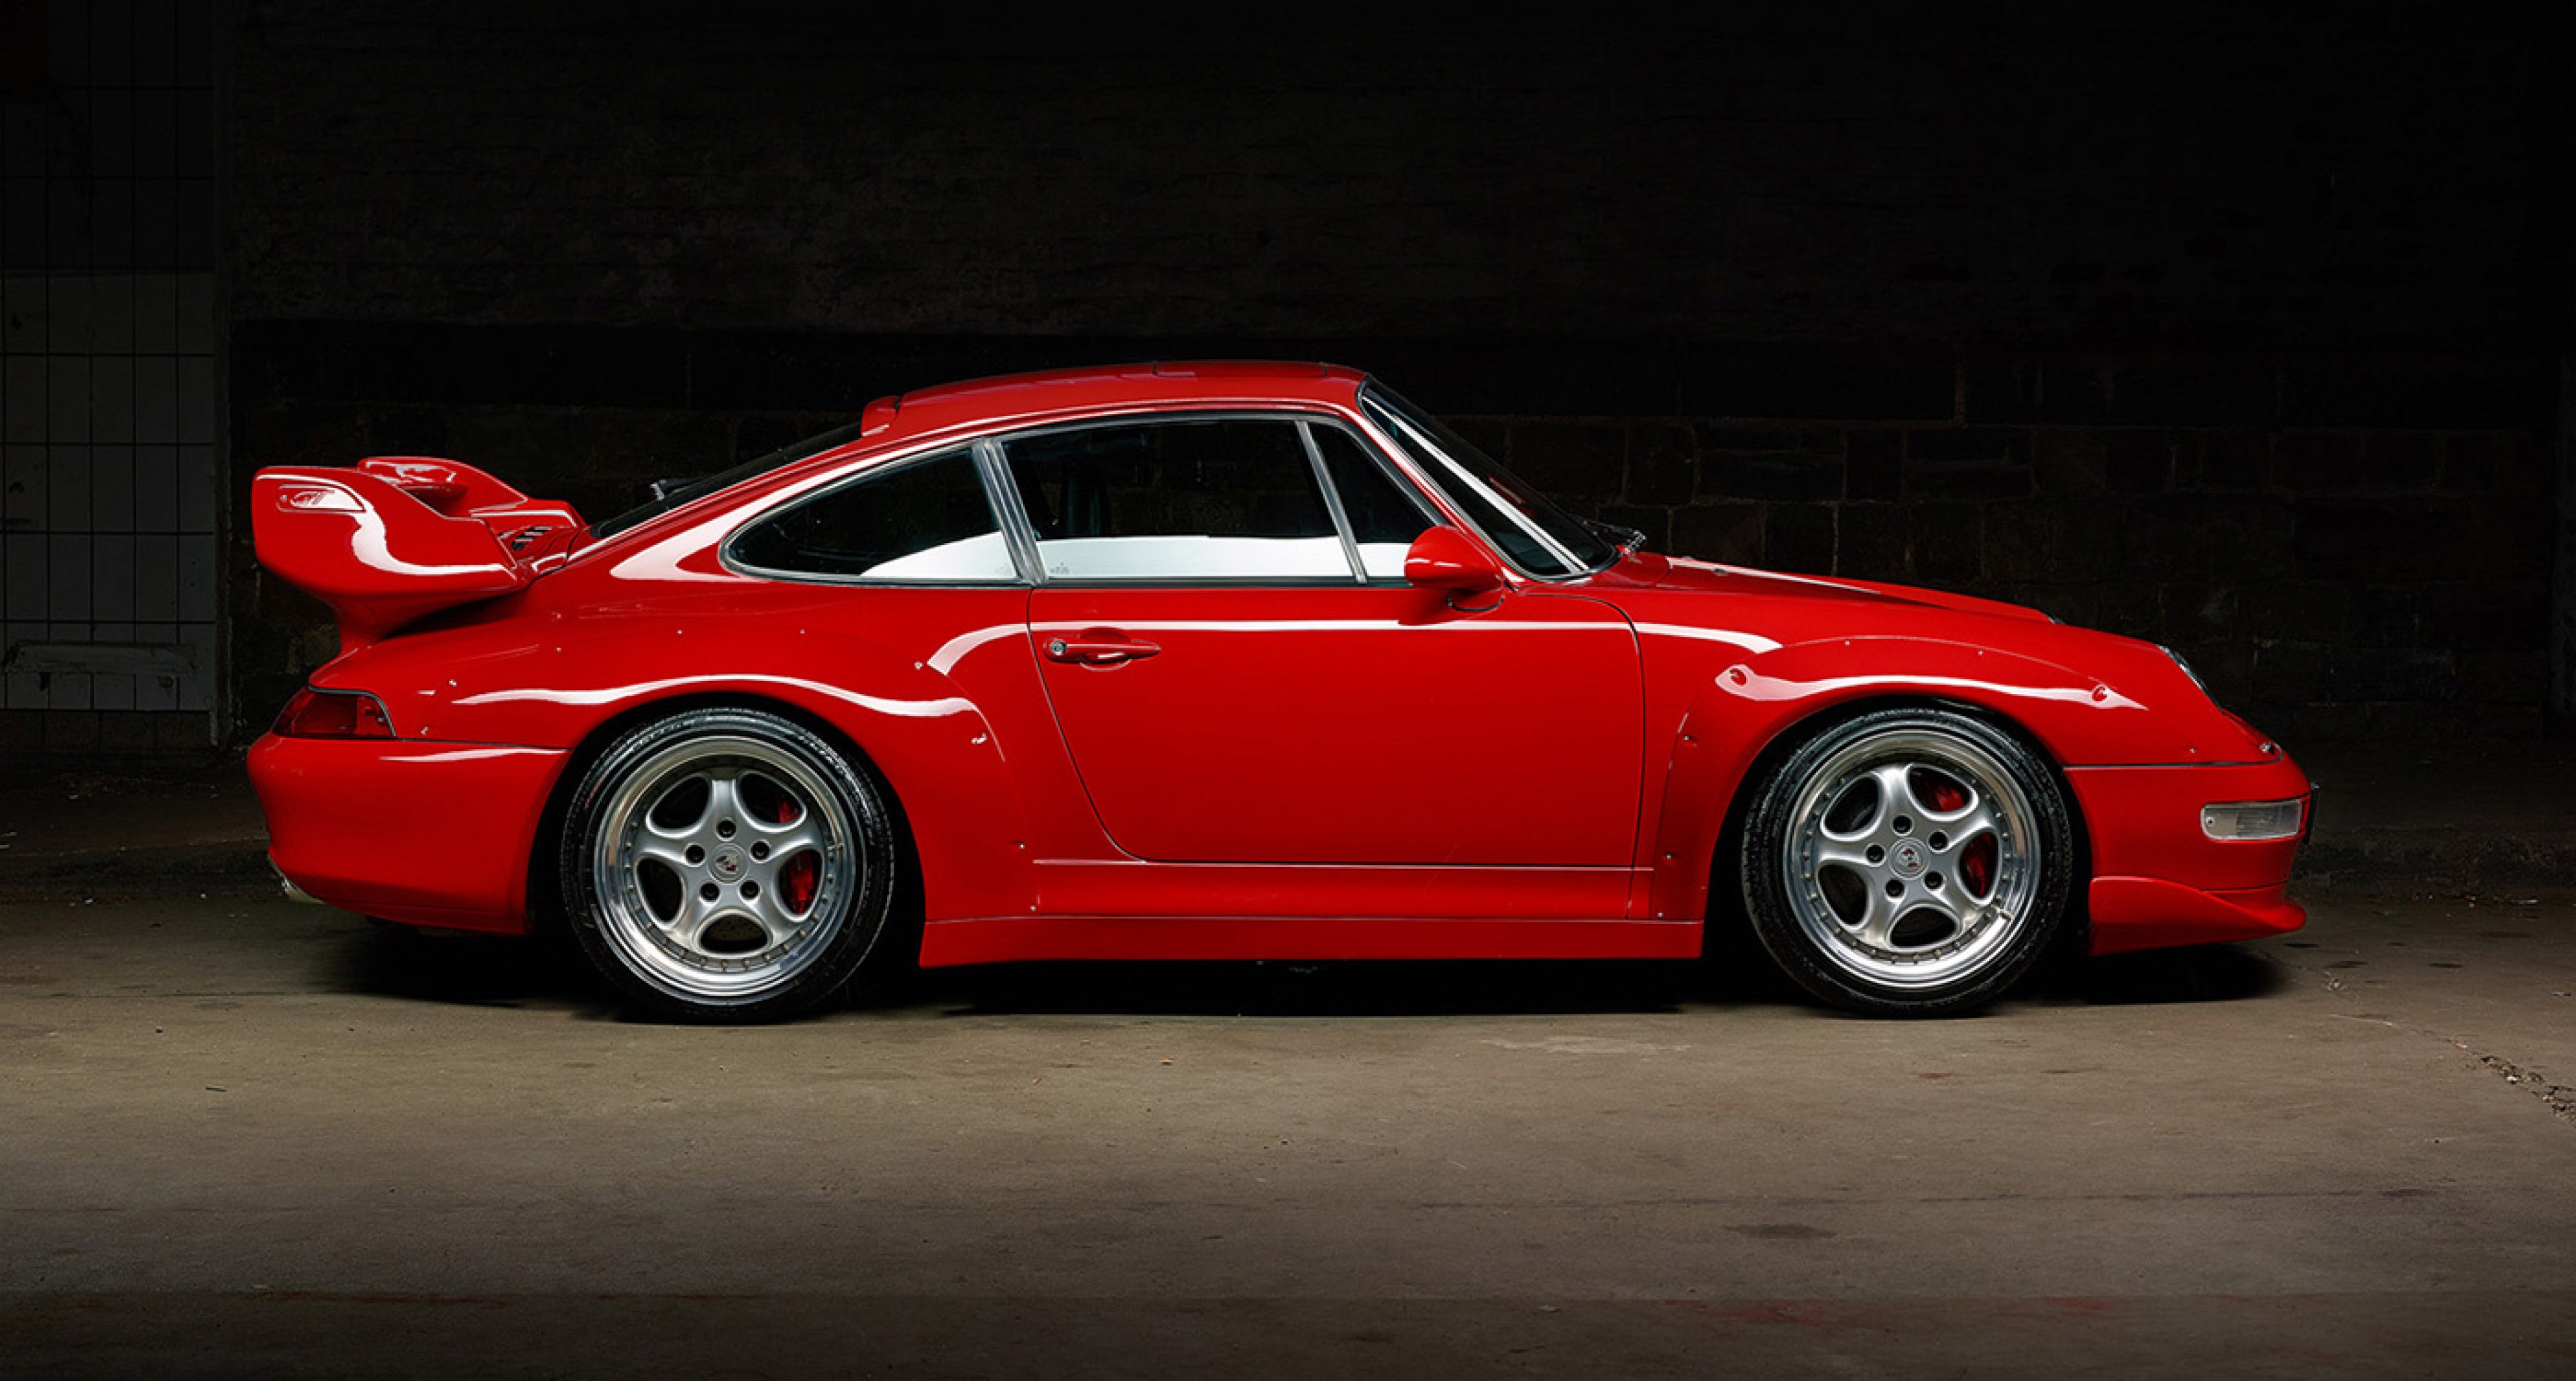 1995 Porsche 911 (993) Turbo to be sold at Coys' 'Legende et Passion' auction in Monaco, 9 May 2014